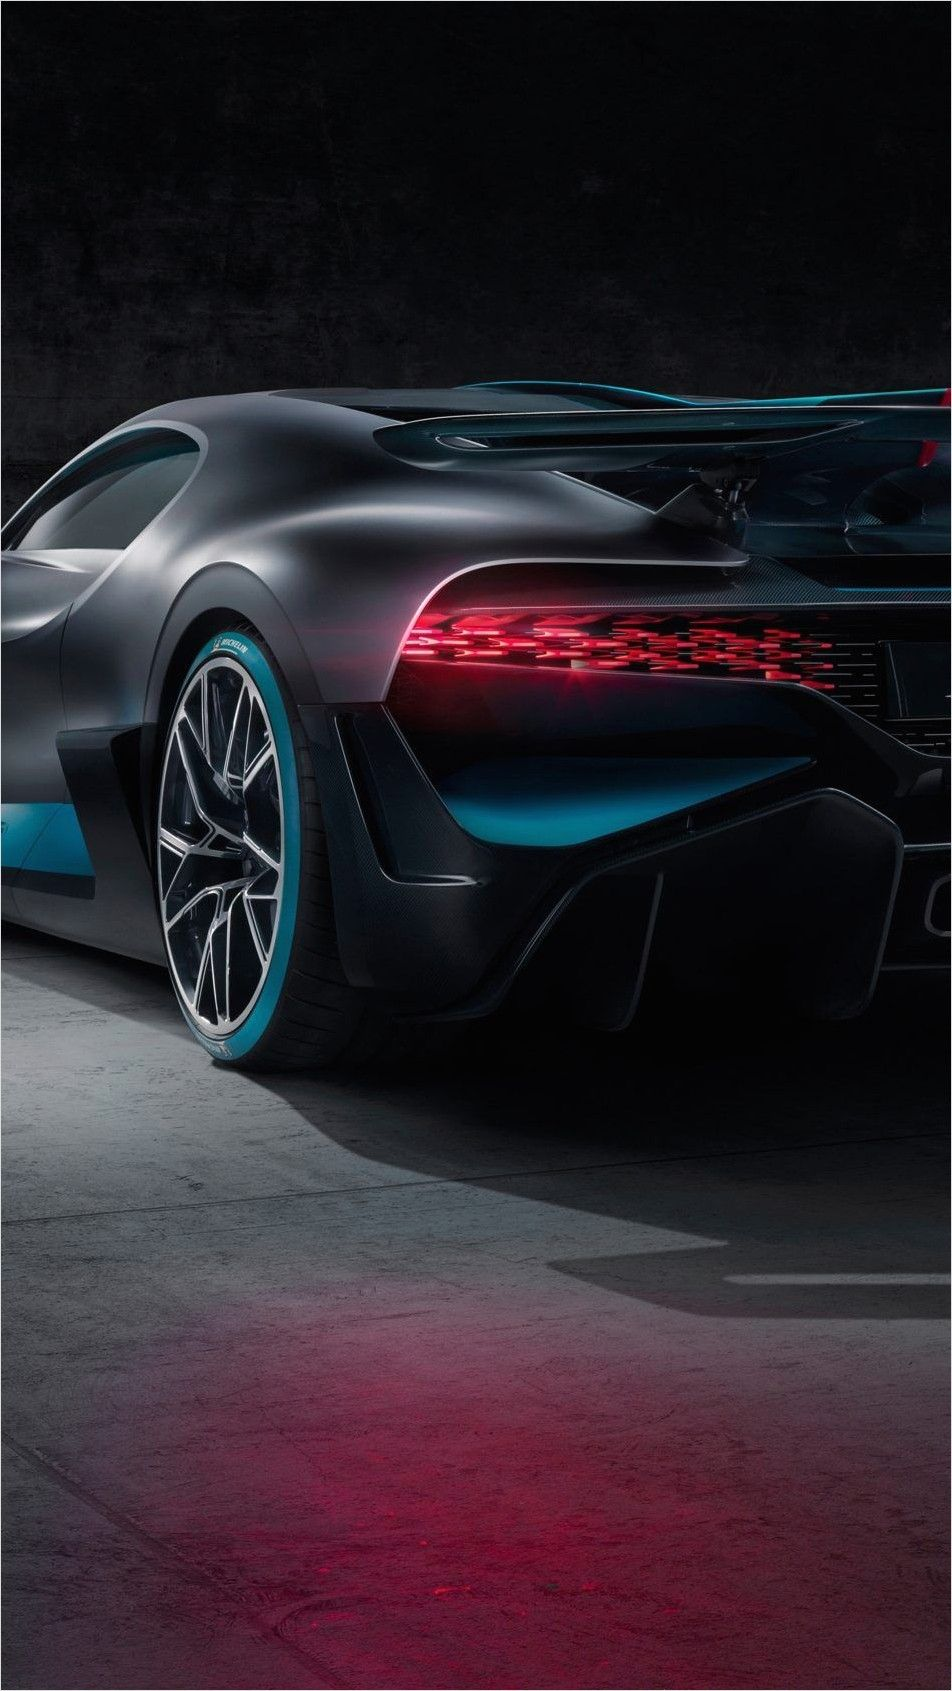 4k Car Wallpaper For Mobile From The 4k Wallpapers You Can Also Download And Share Your Favorite In 2020 Car Wallpapers Car Wallpaper For Mobile Car Iphone Wallpaper